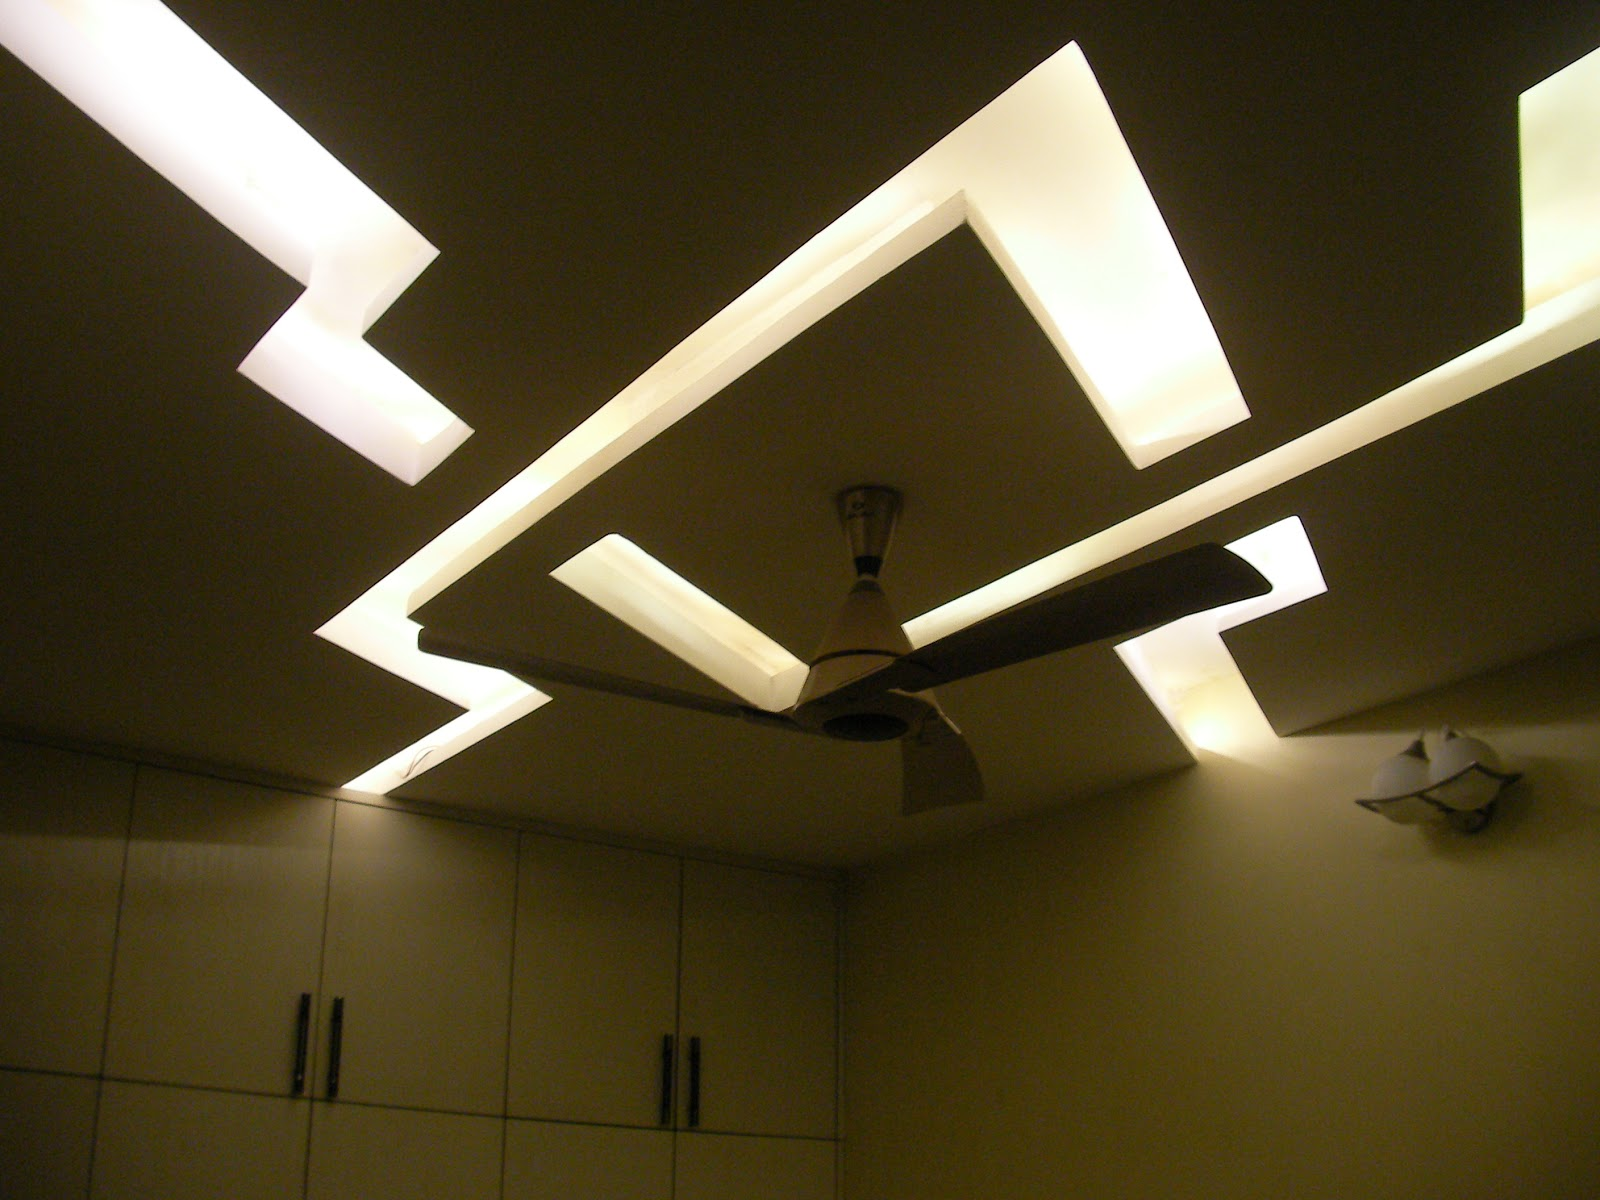 ... of Art: Interiors Project #1 - False Ceiling Designs (Additional